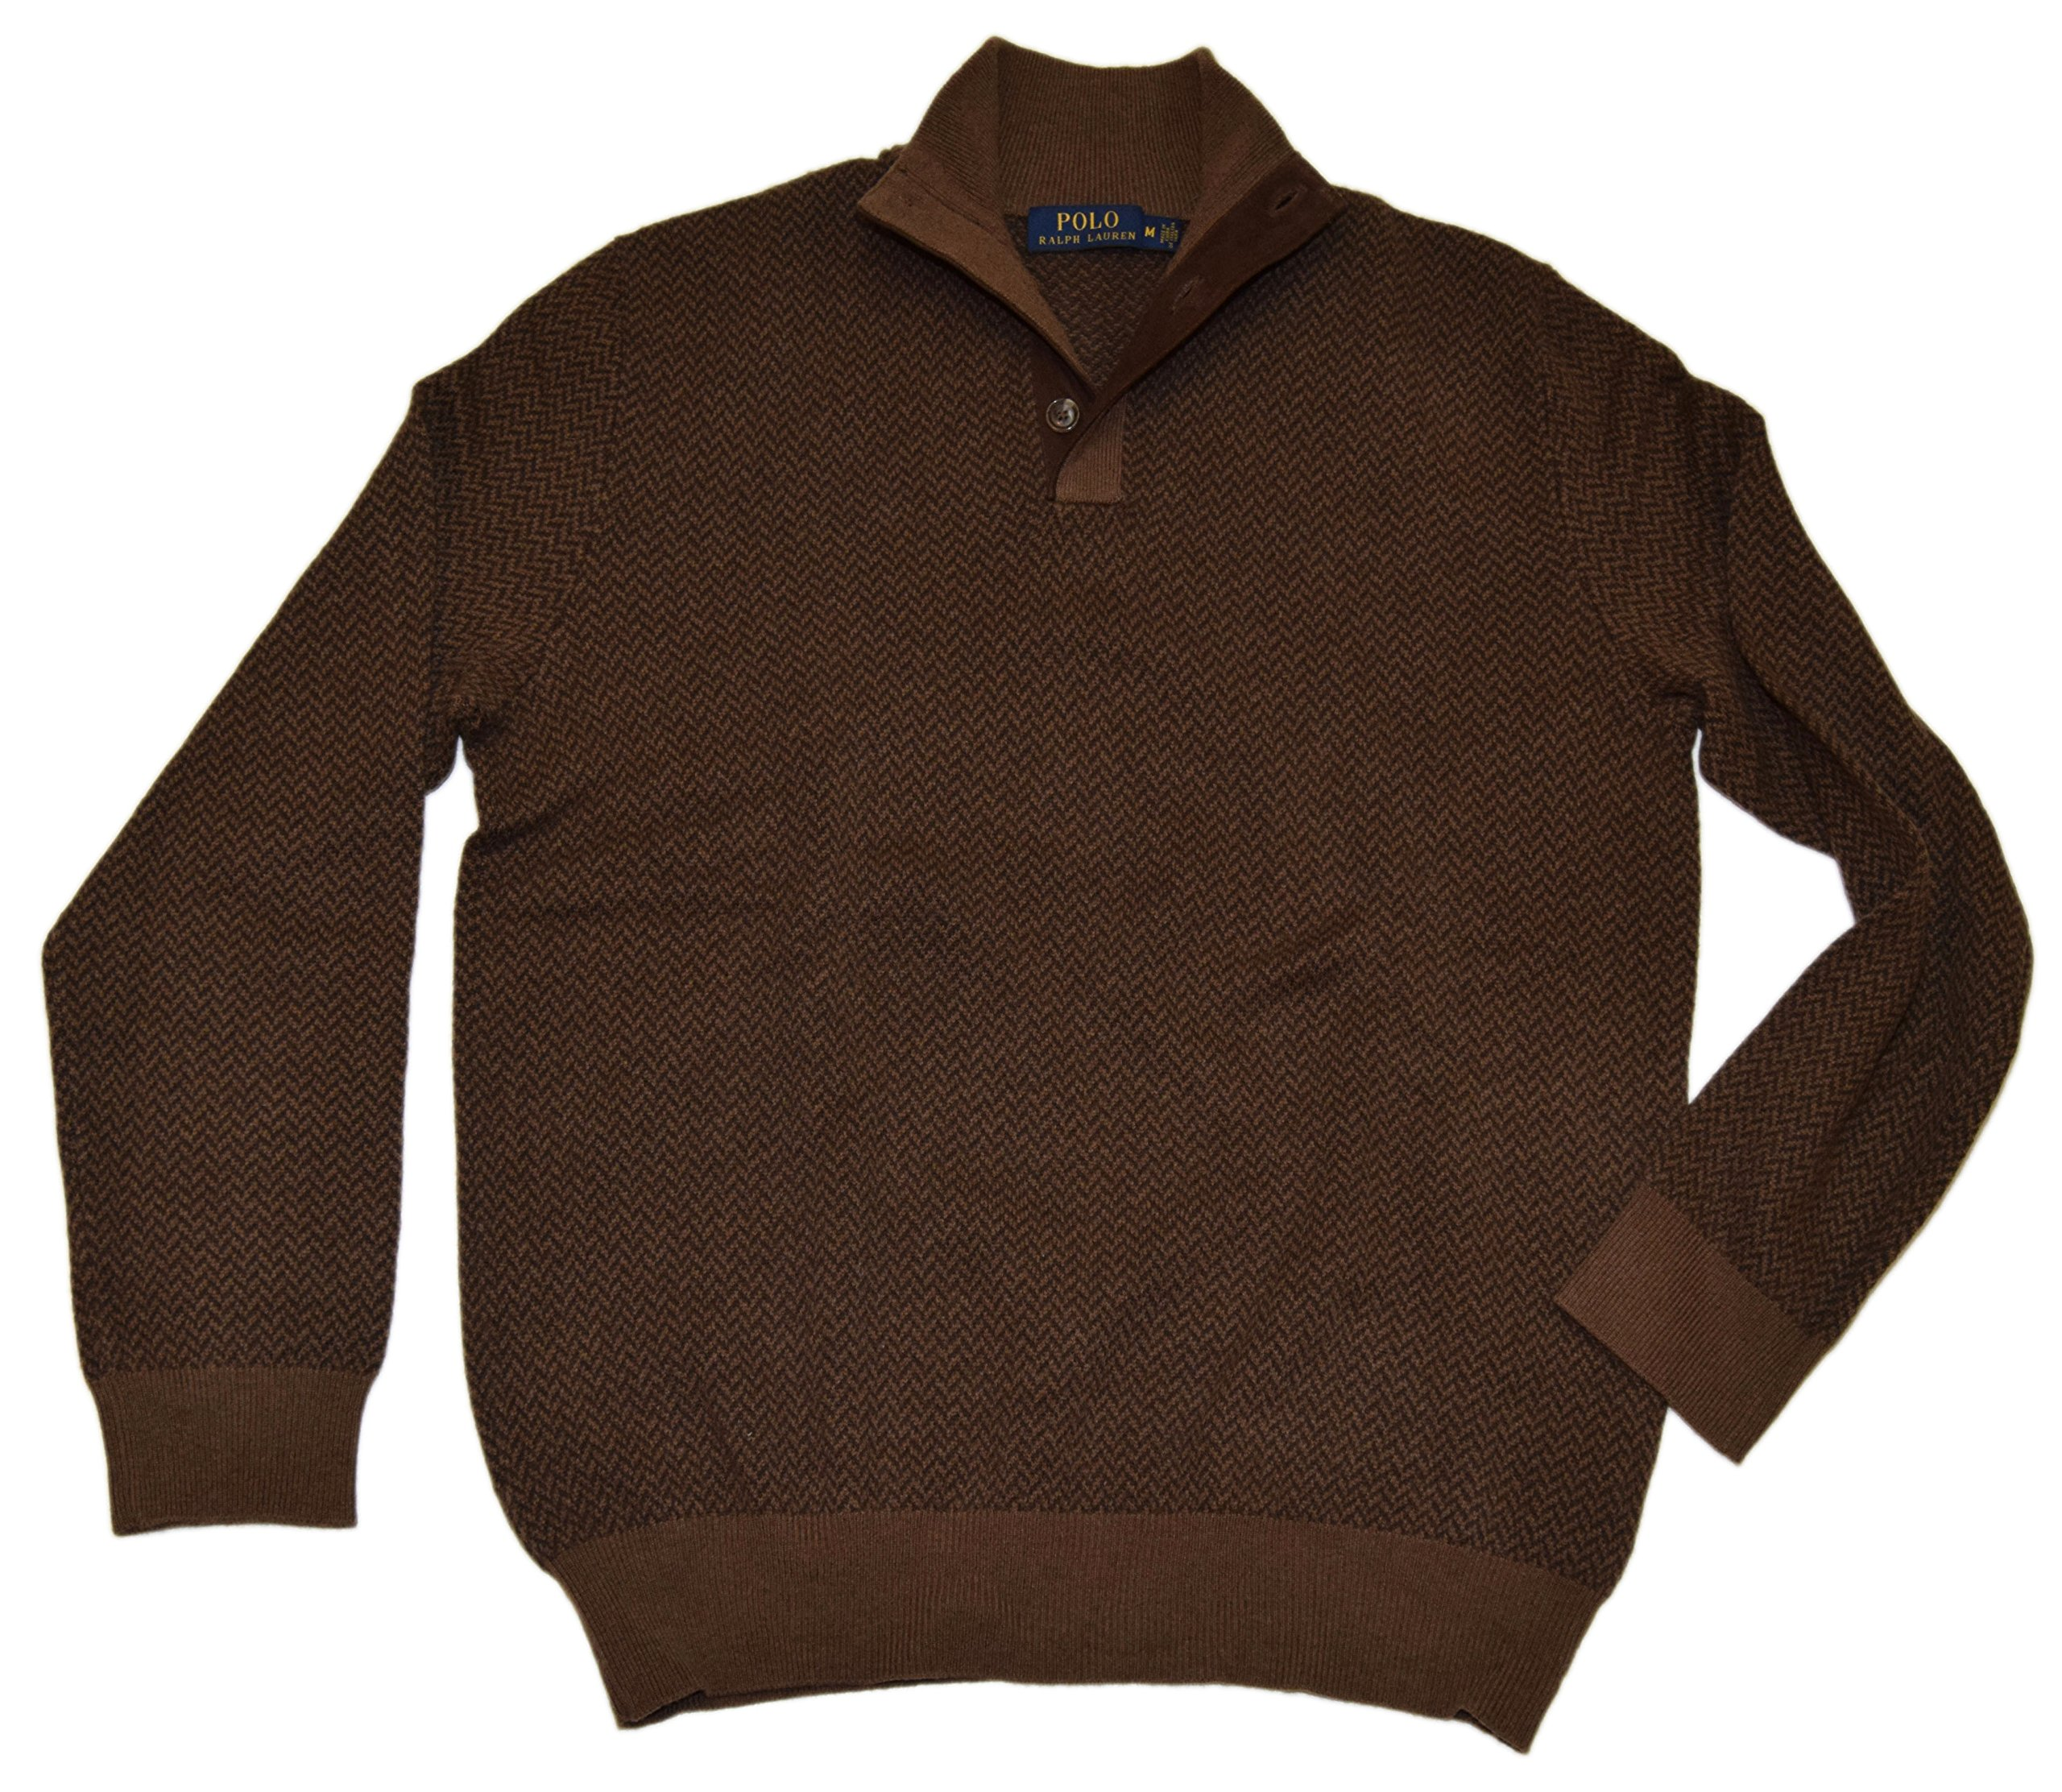 Polo Ralph Lauren Men's Wool Herringbone Sweater (Medium, Browns)